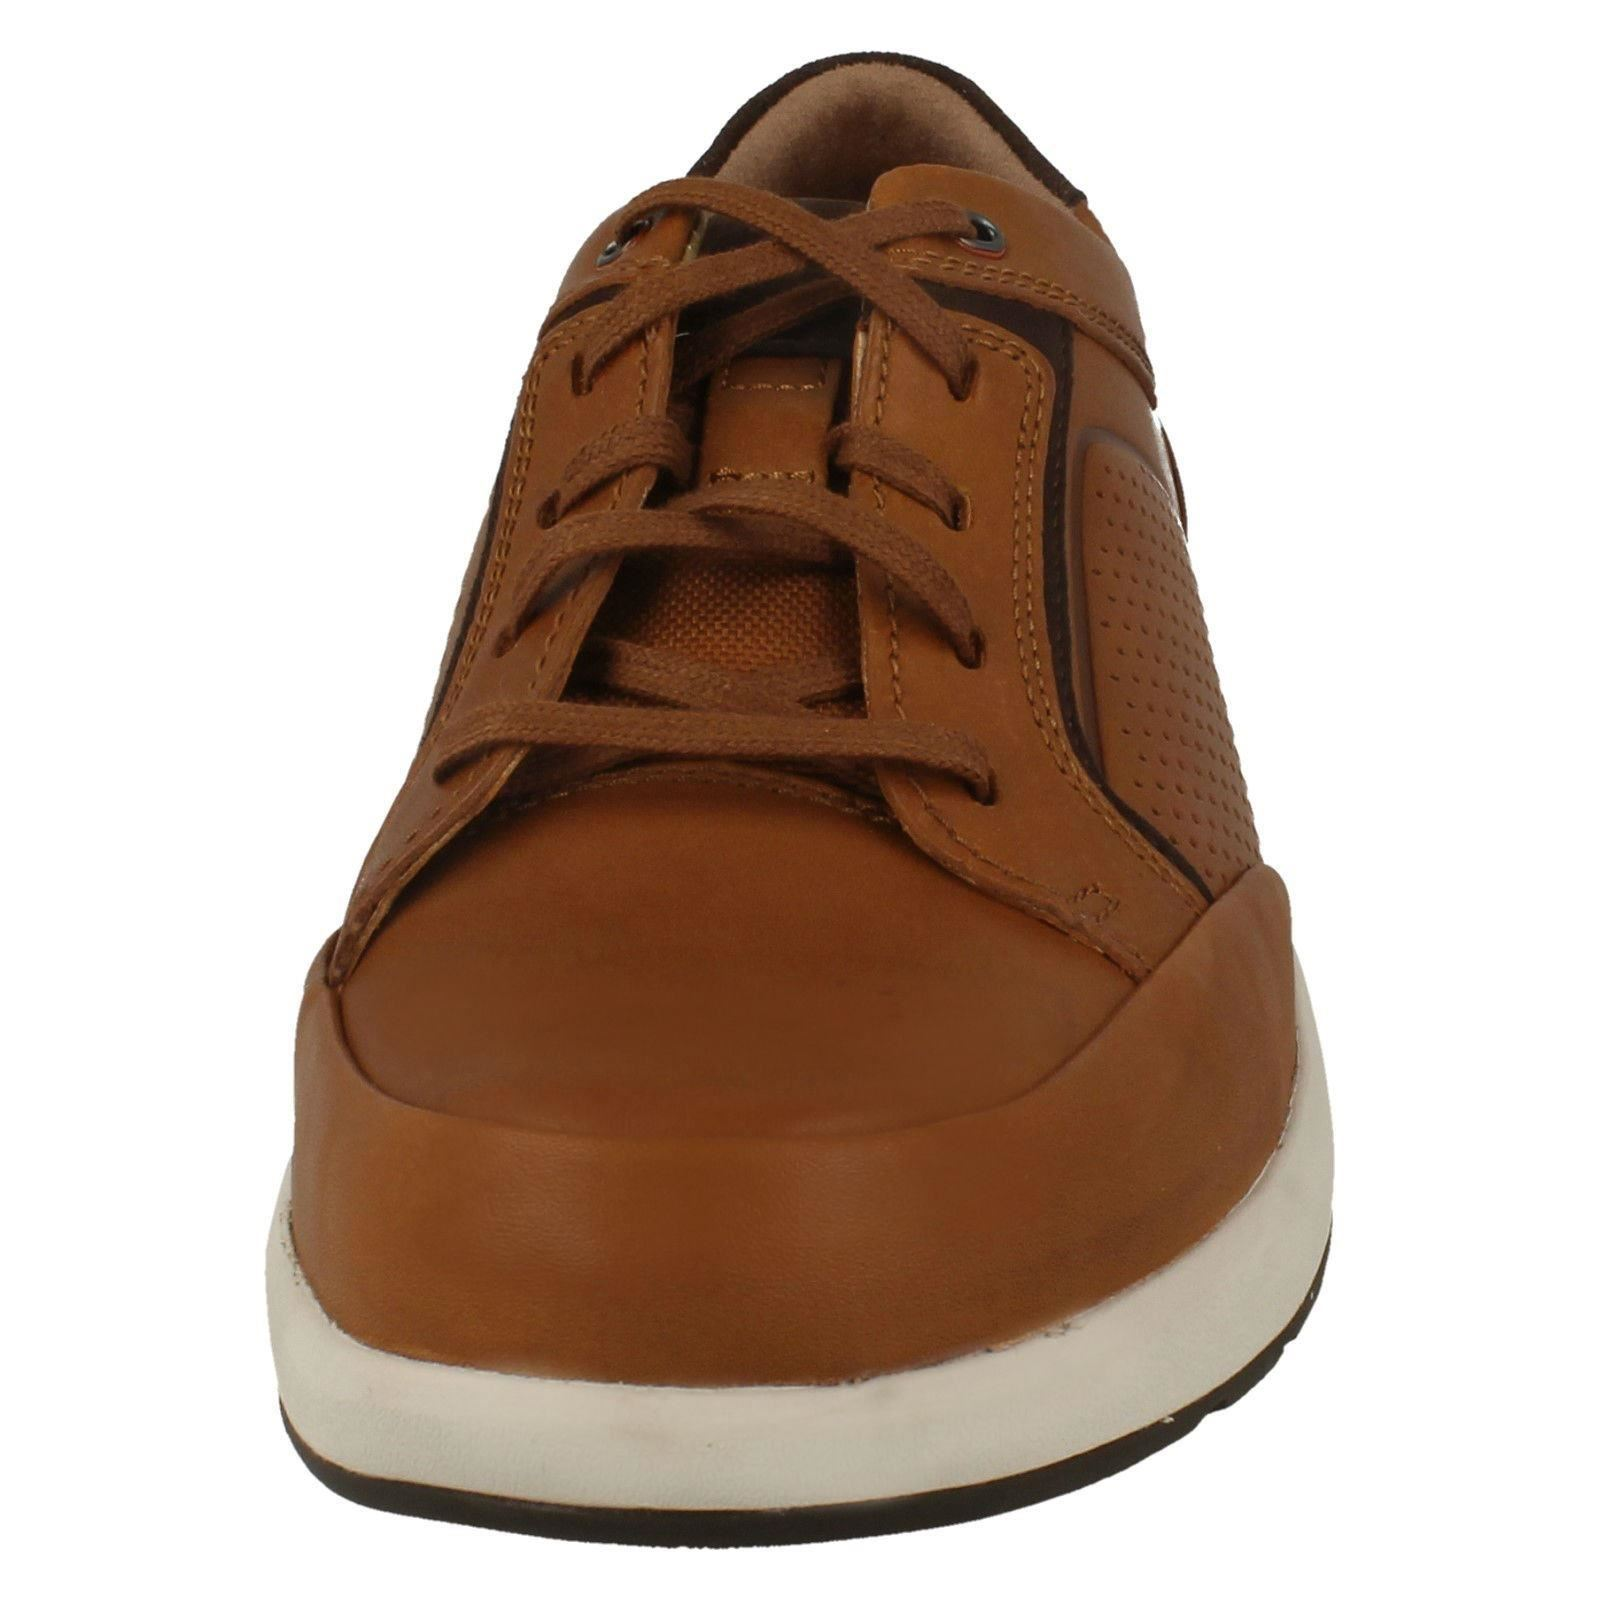 Form Mens Up Lace Clarks Da Casual Leather Style Un Trail Unstructured Tan zgzqpB